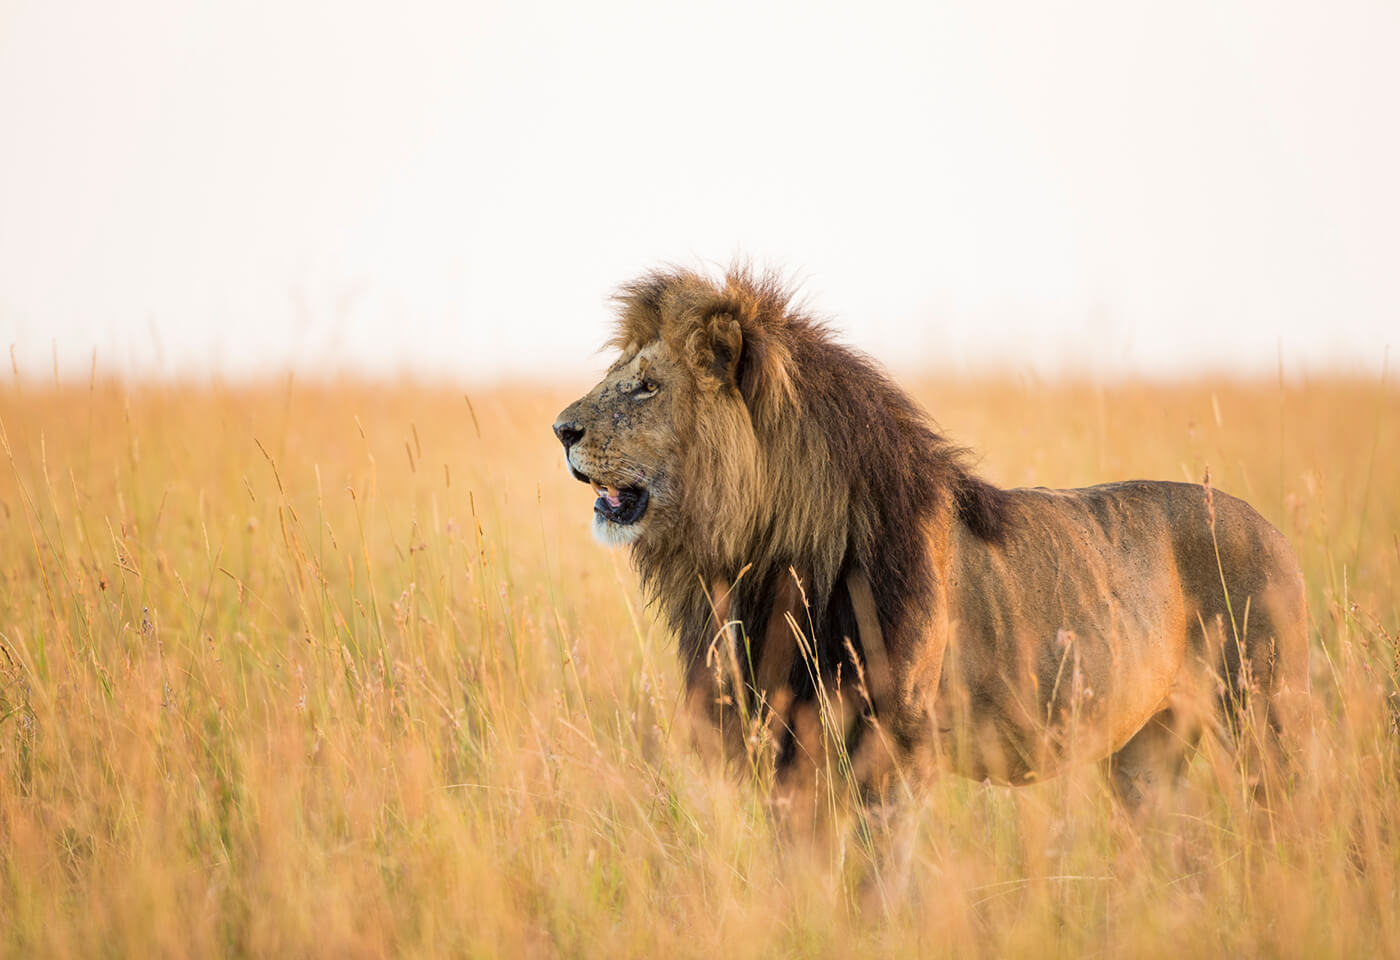 Image of lion in Africa